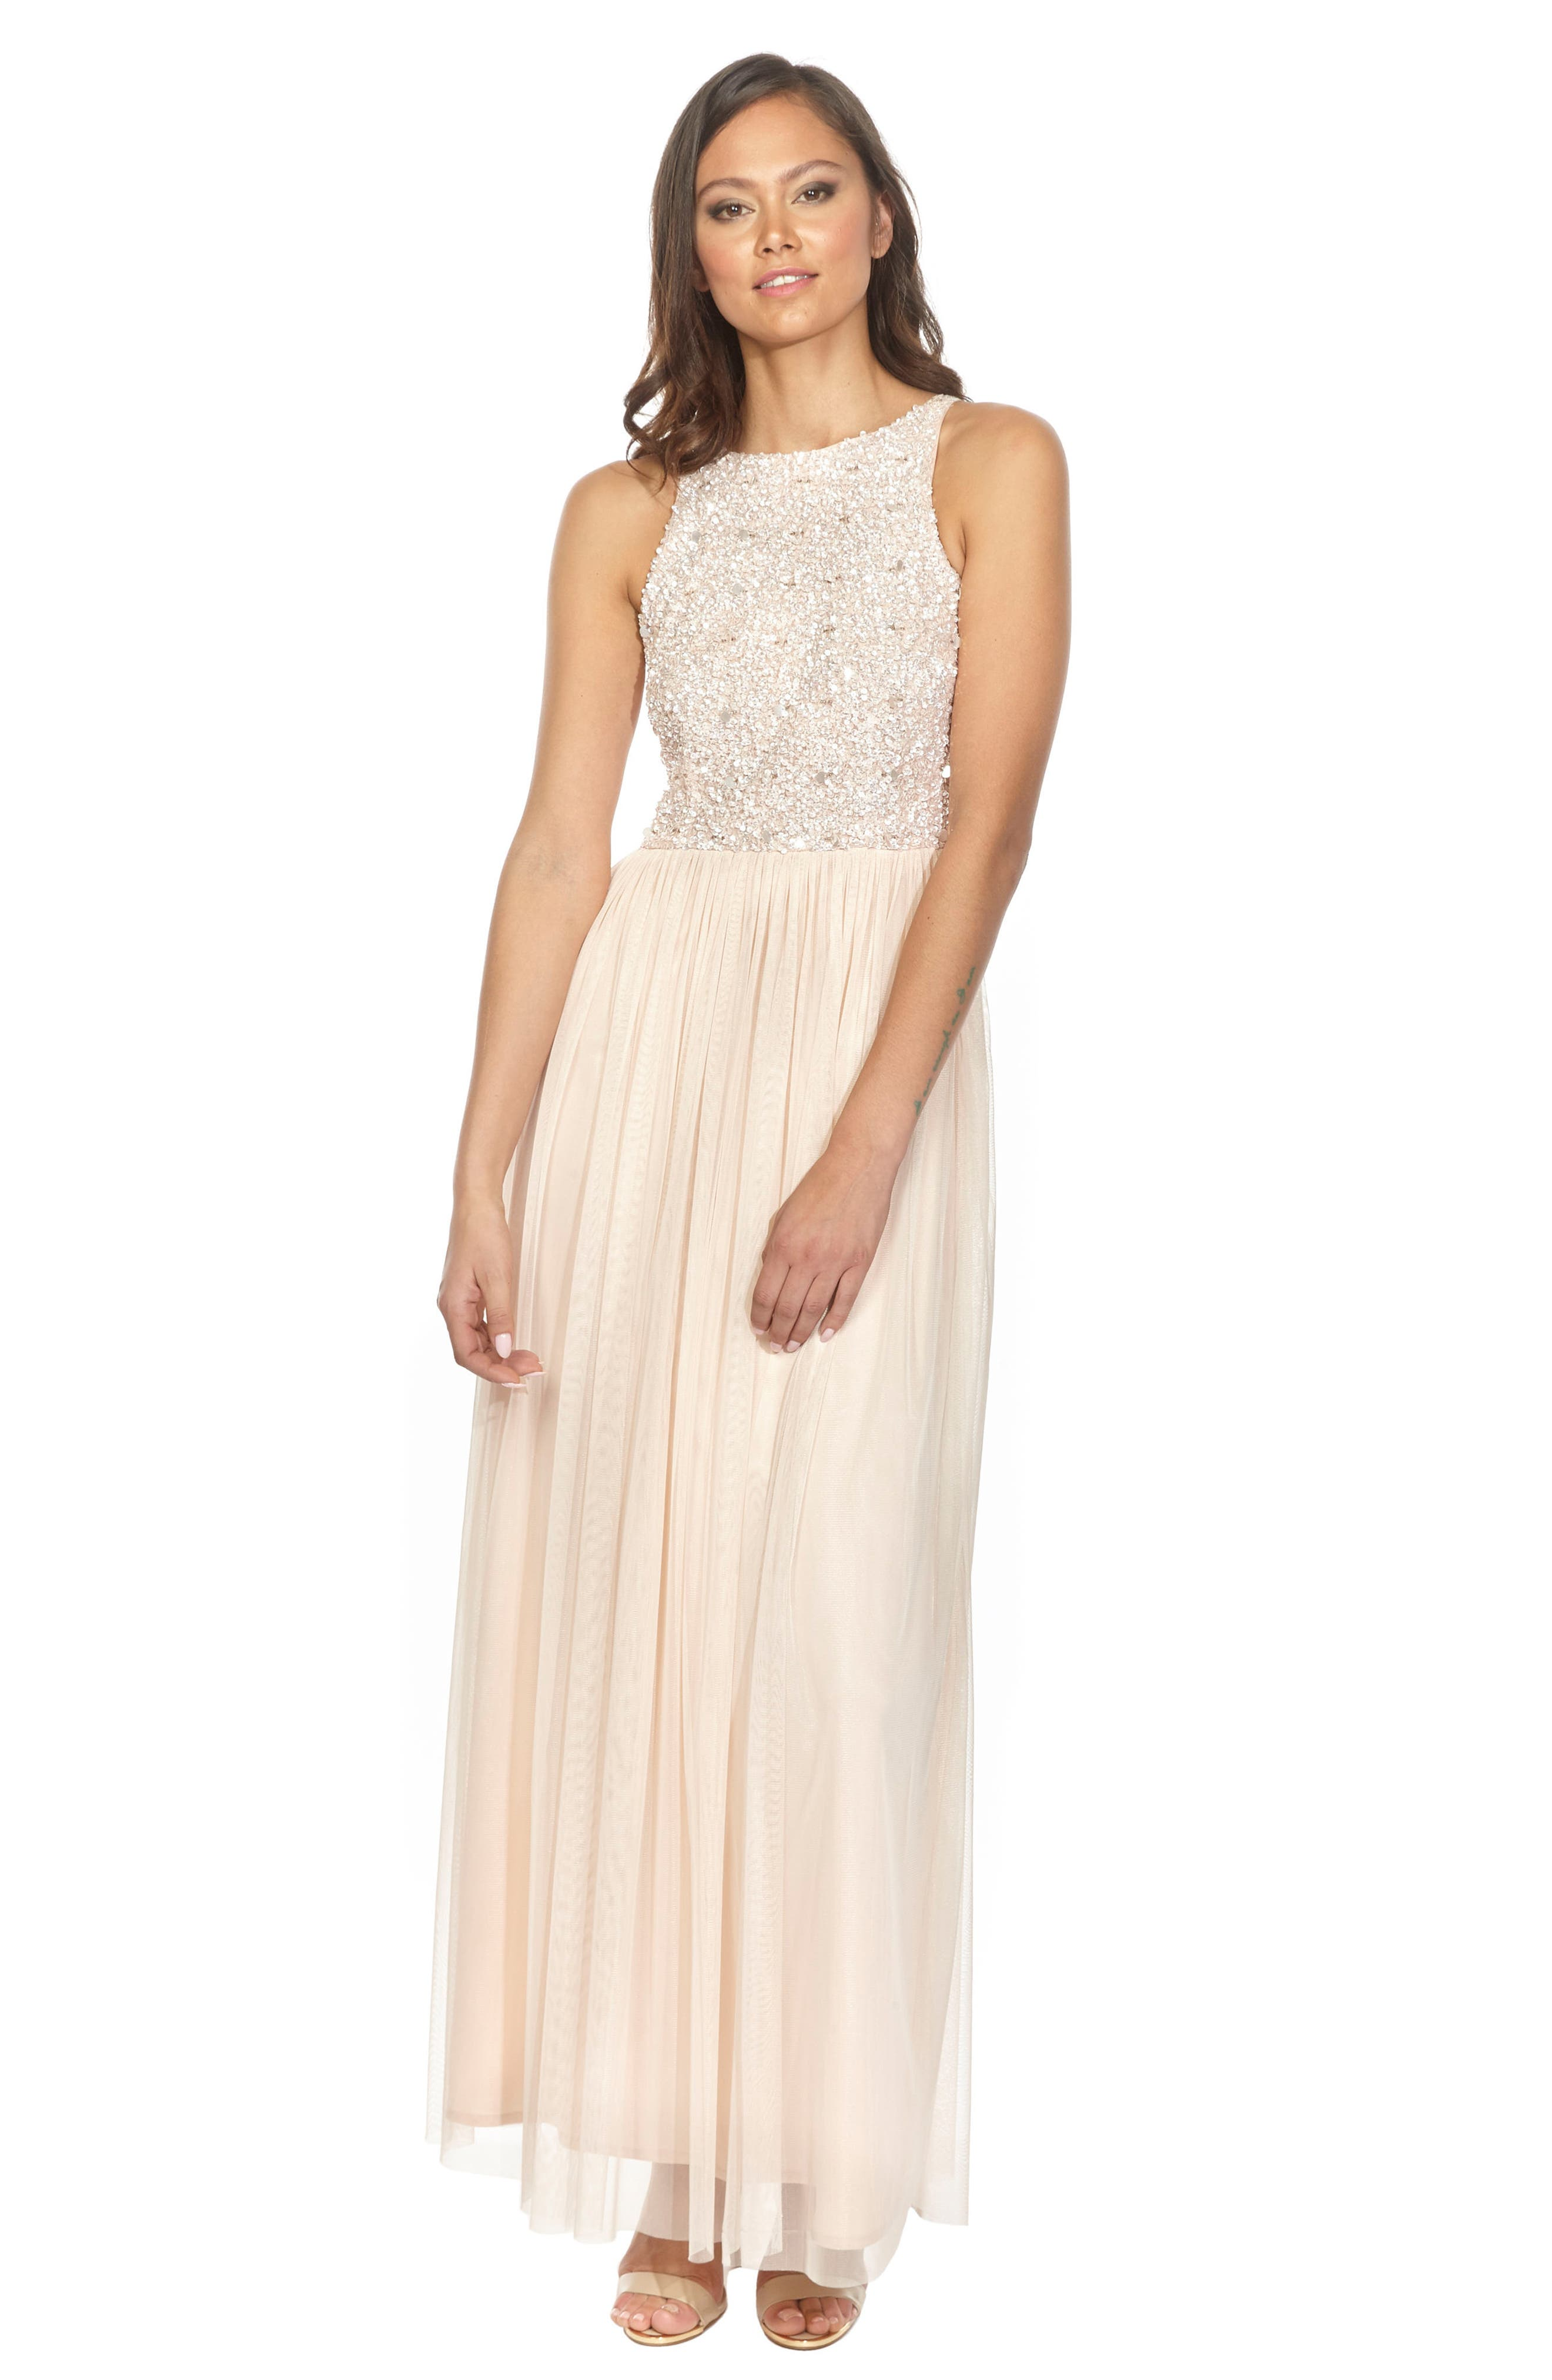 Picasso Embellished Bodice Maxi Dress,                             Alternate thumbnail 2, color,                             Nude